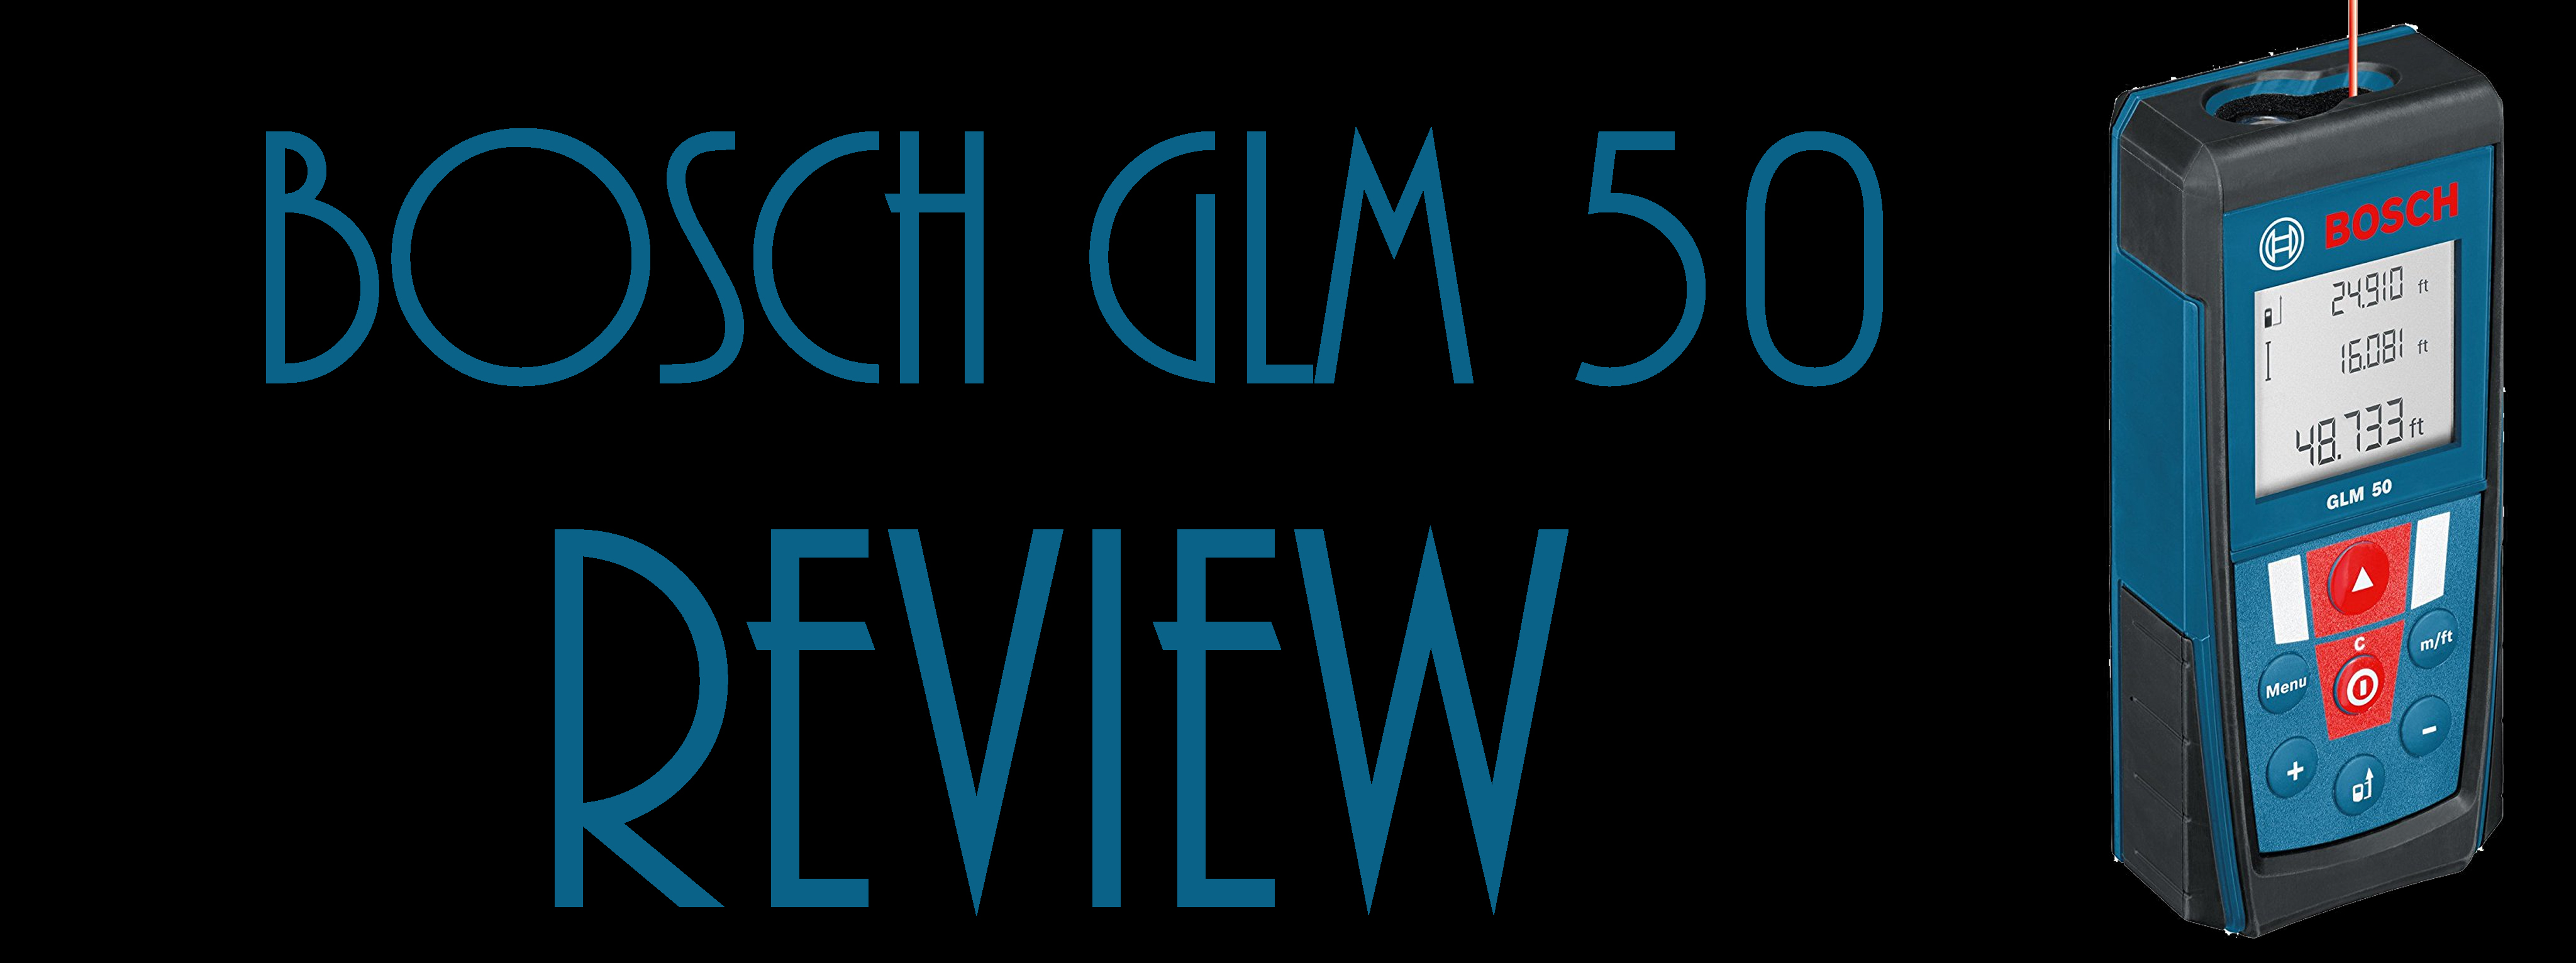 Feature Image for Bosch GLM 50 Review